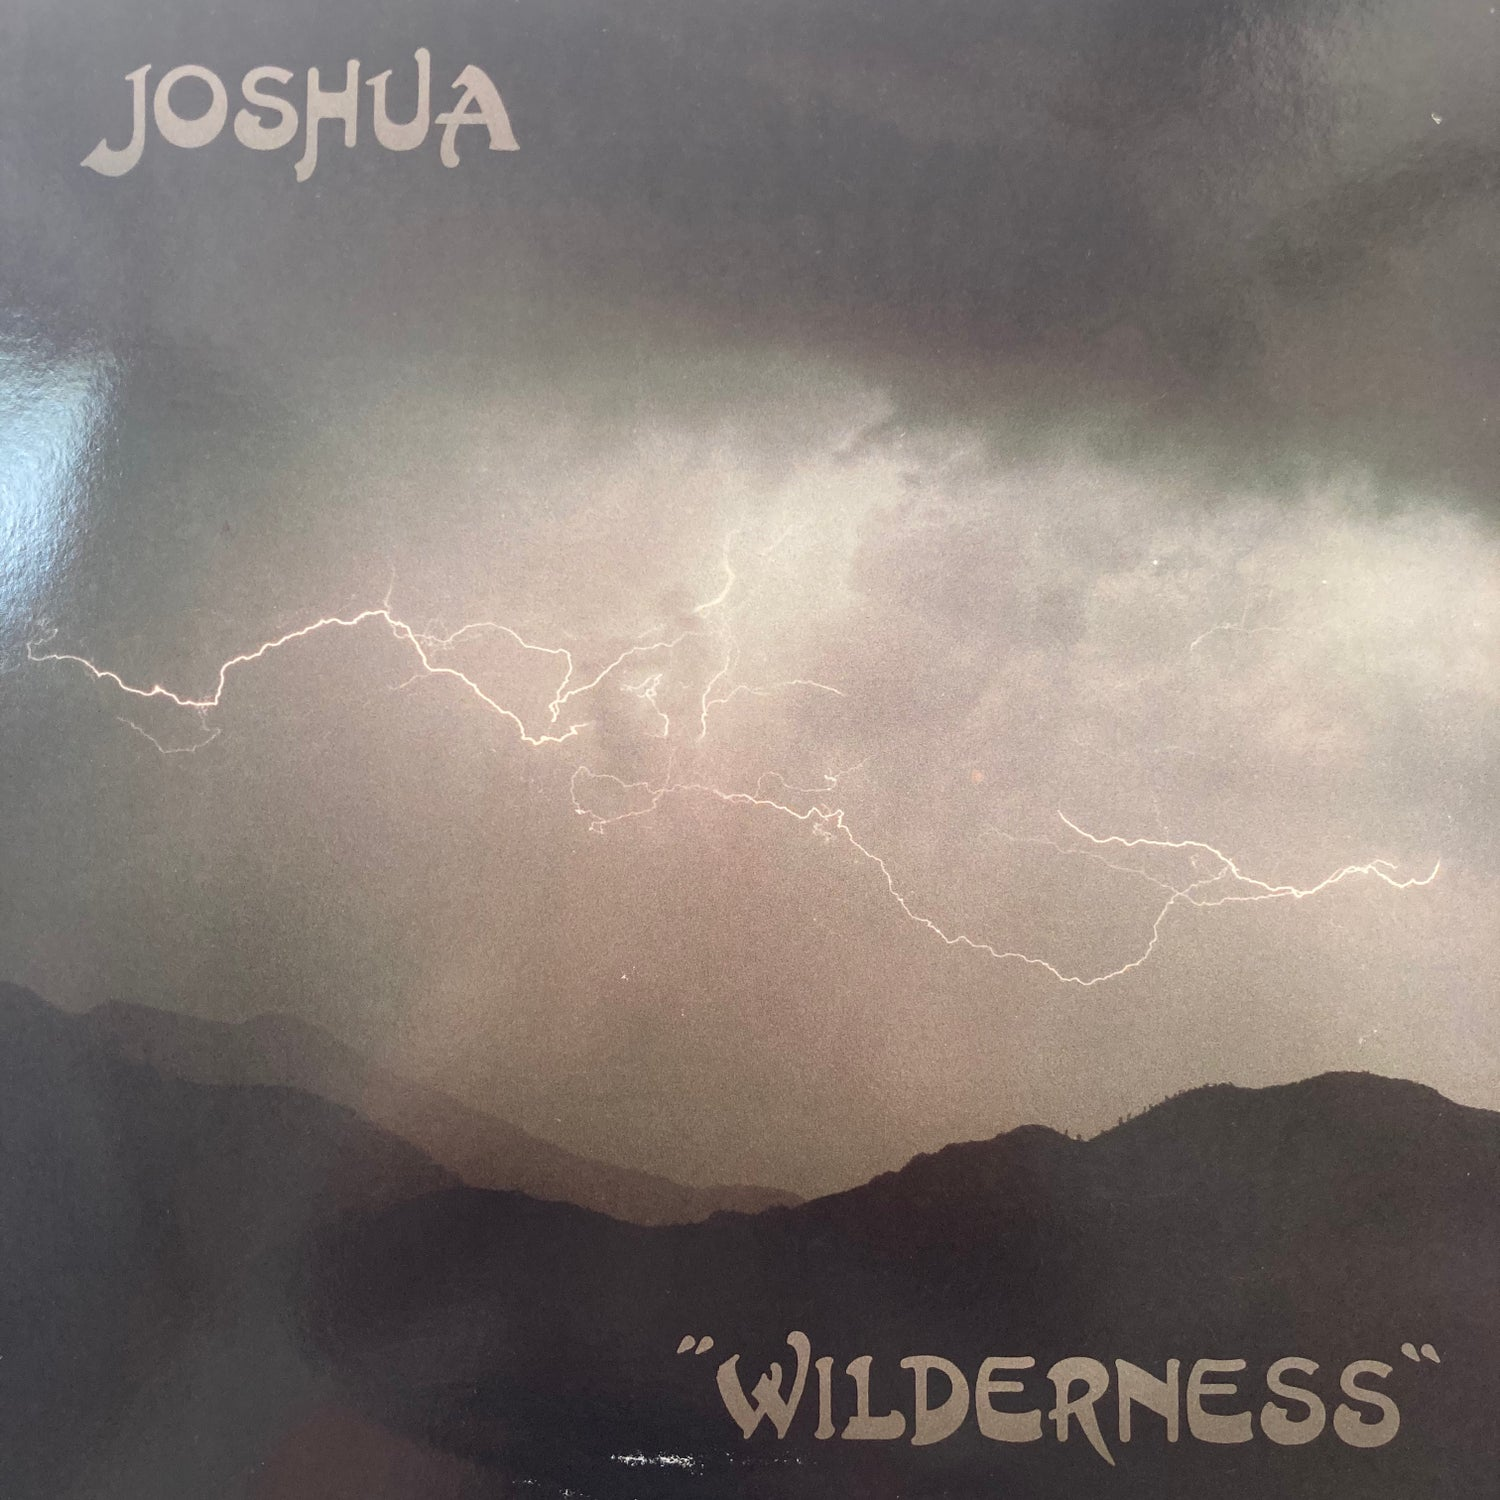 Image of Joshua - Wilderness